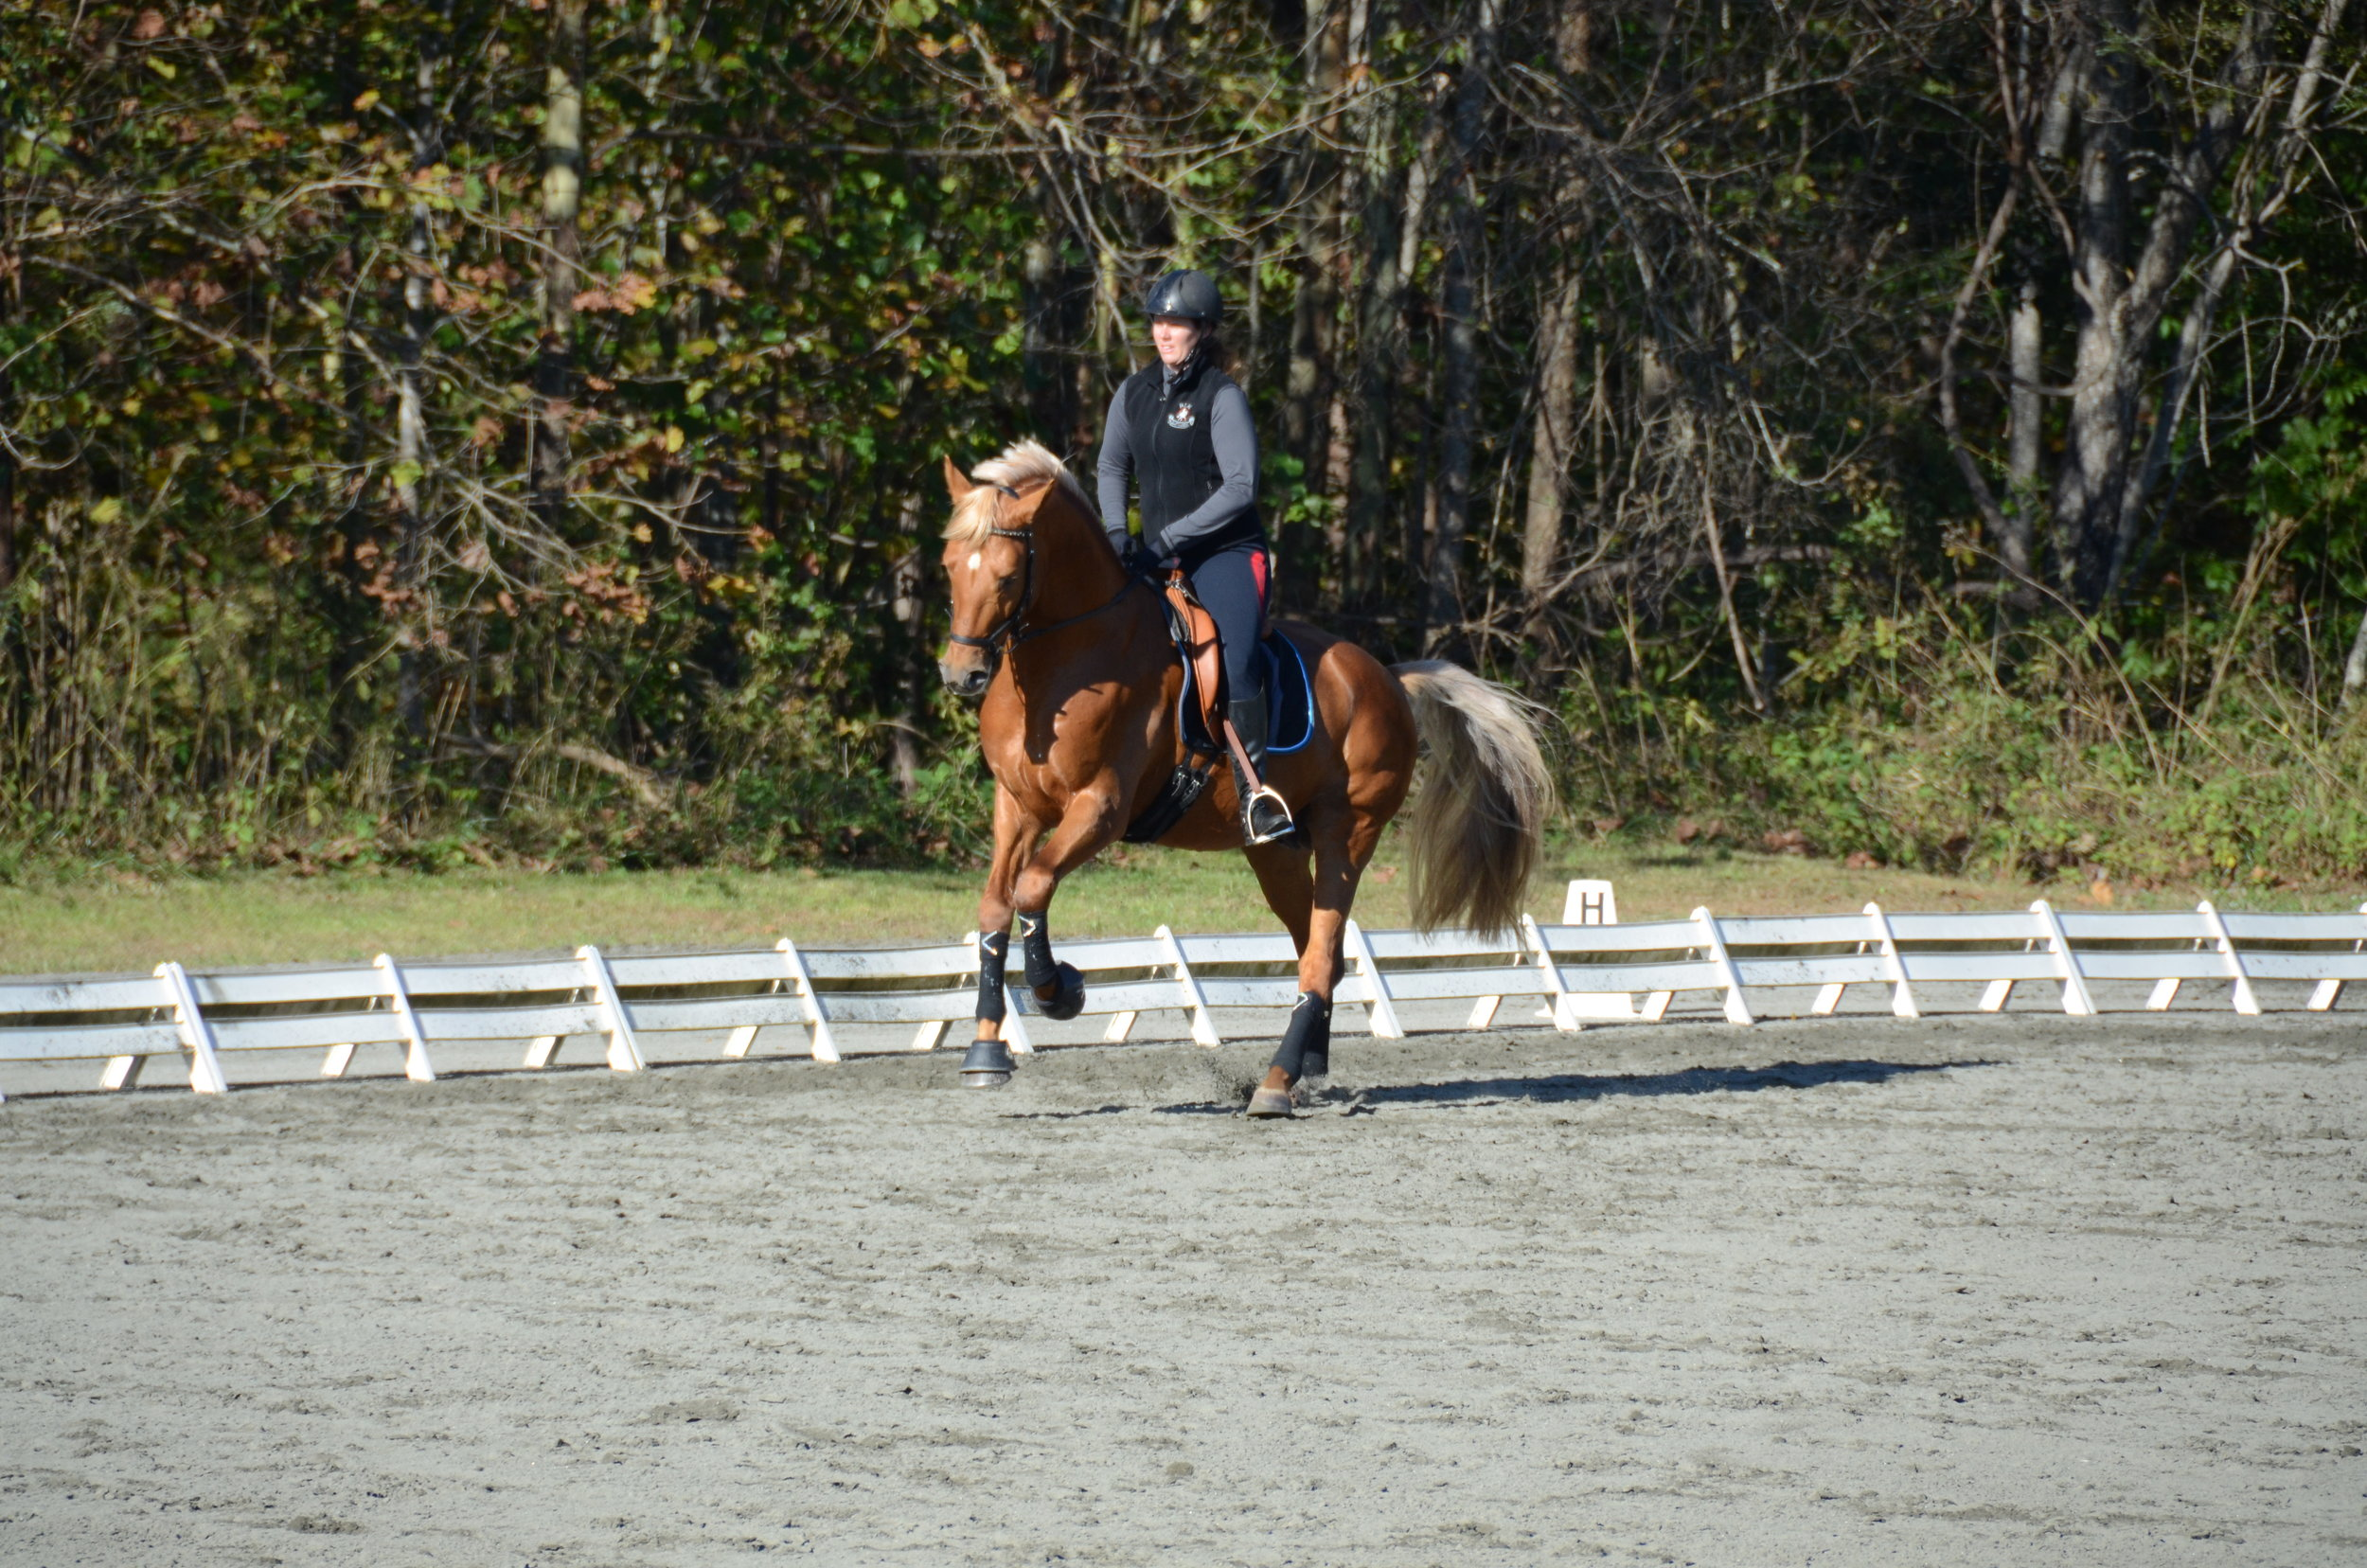 RIDER POSITION AND AWARENESS – YVONNE BARTEAU